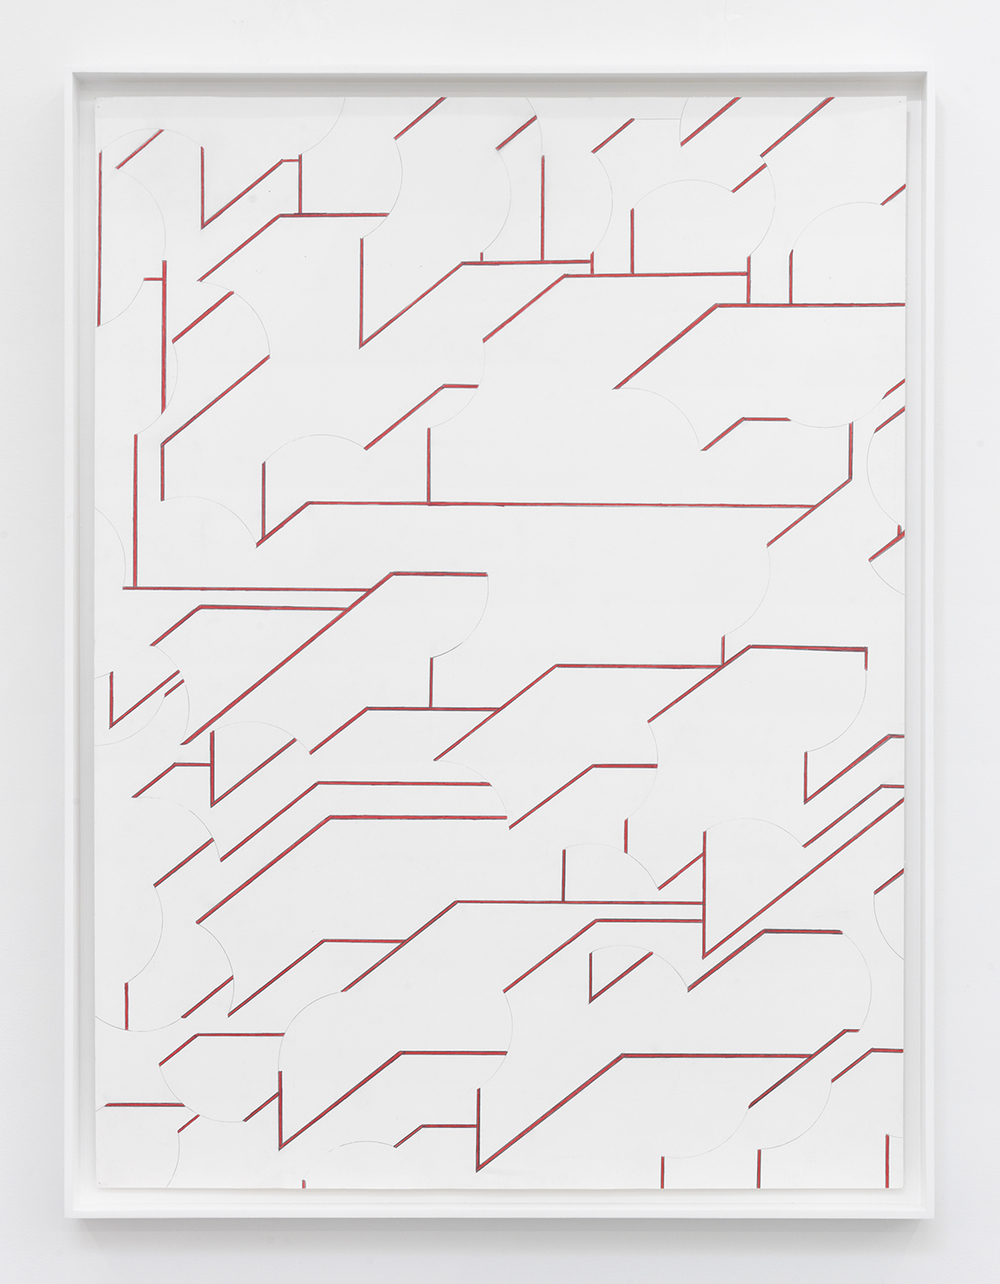 Miles Huston Blank Verse, Red Line, 2012 Colored pencil on paper in artist frame 31.5 x 24 inches